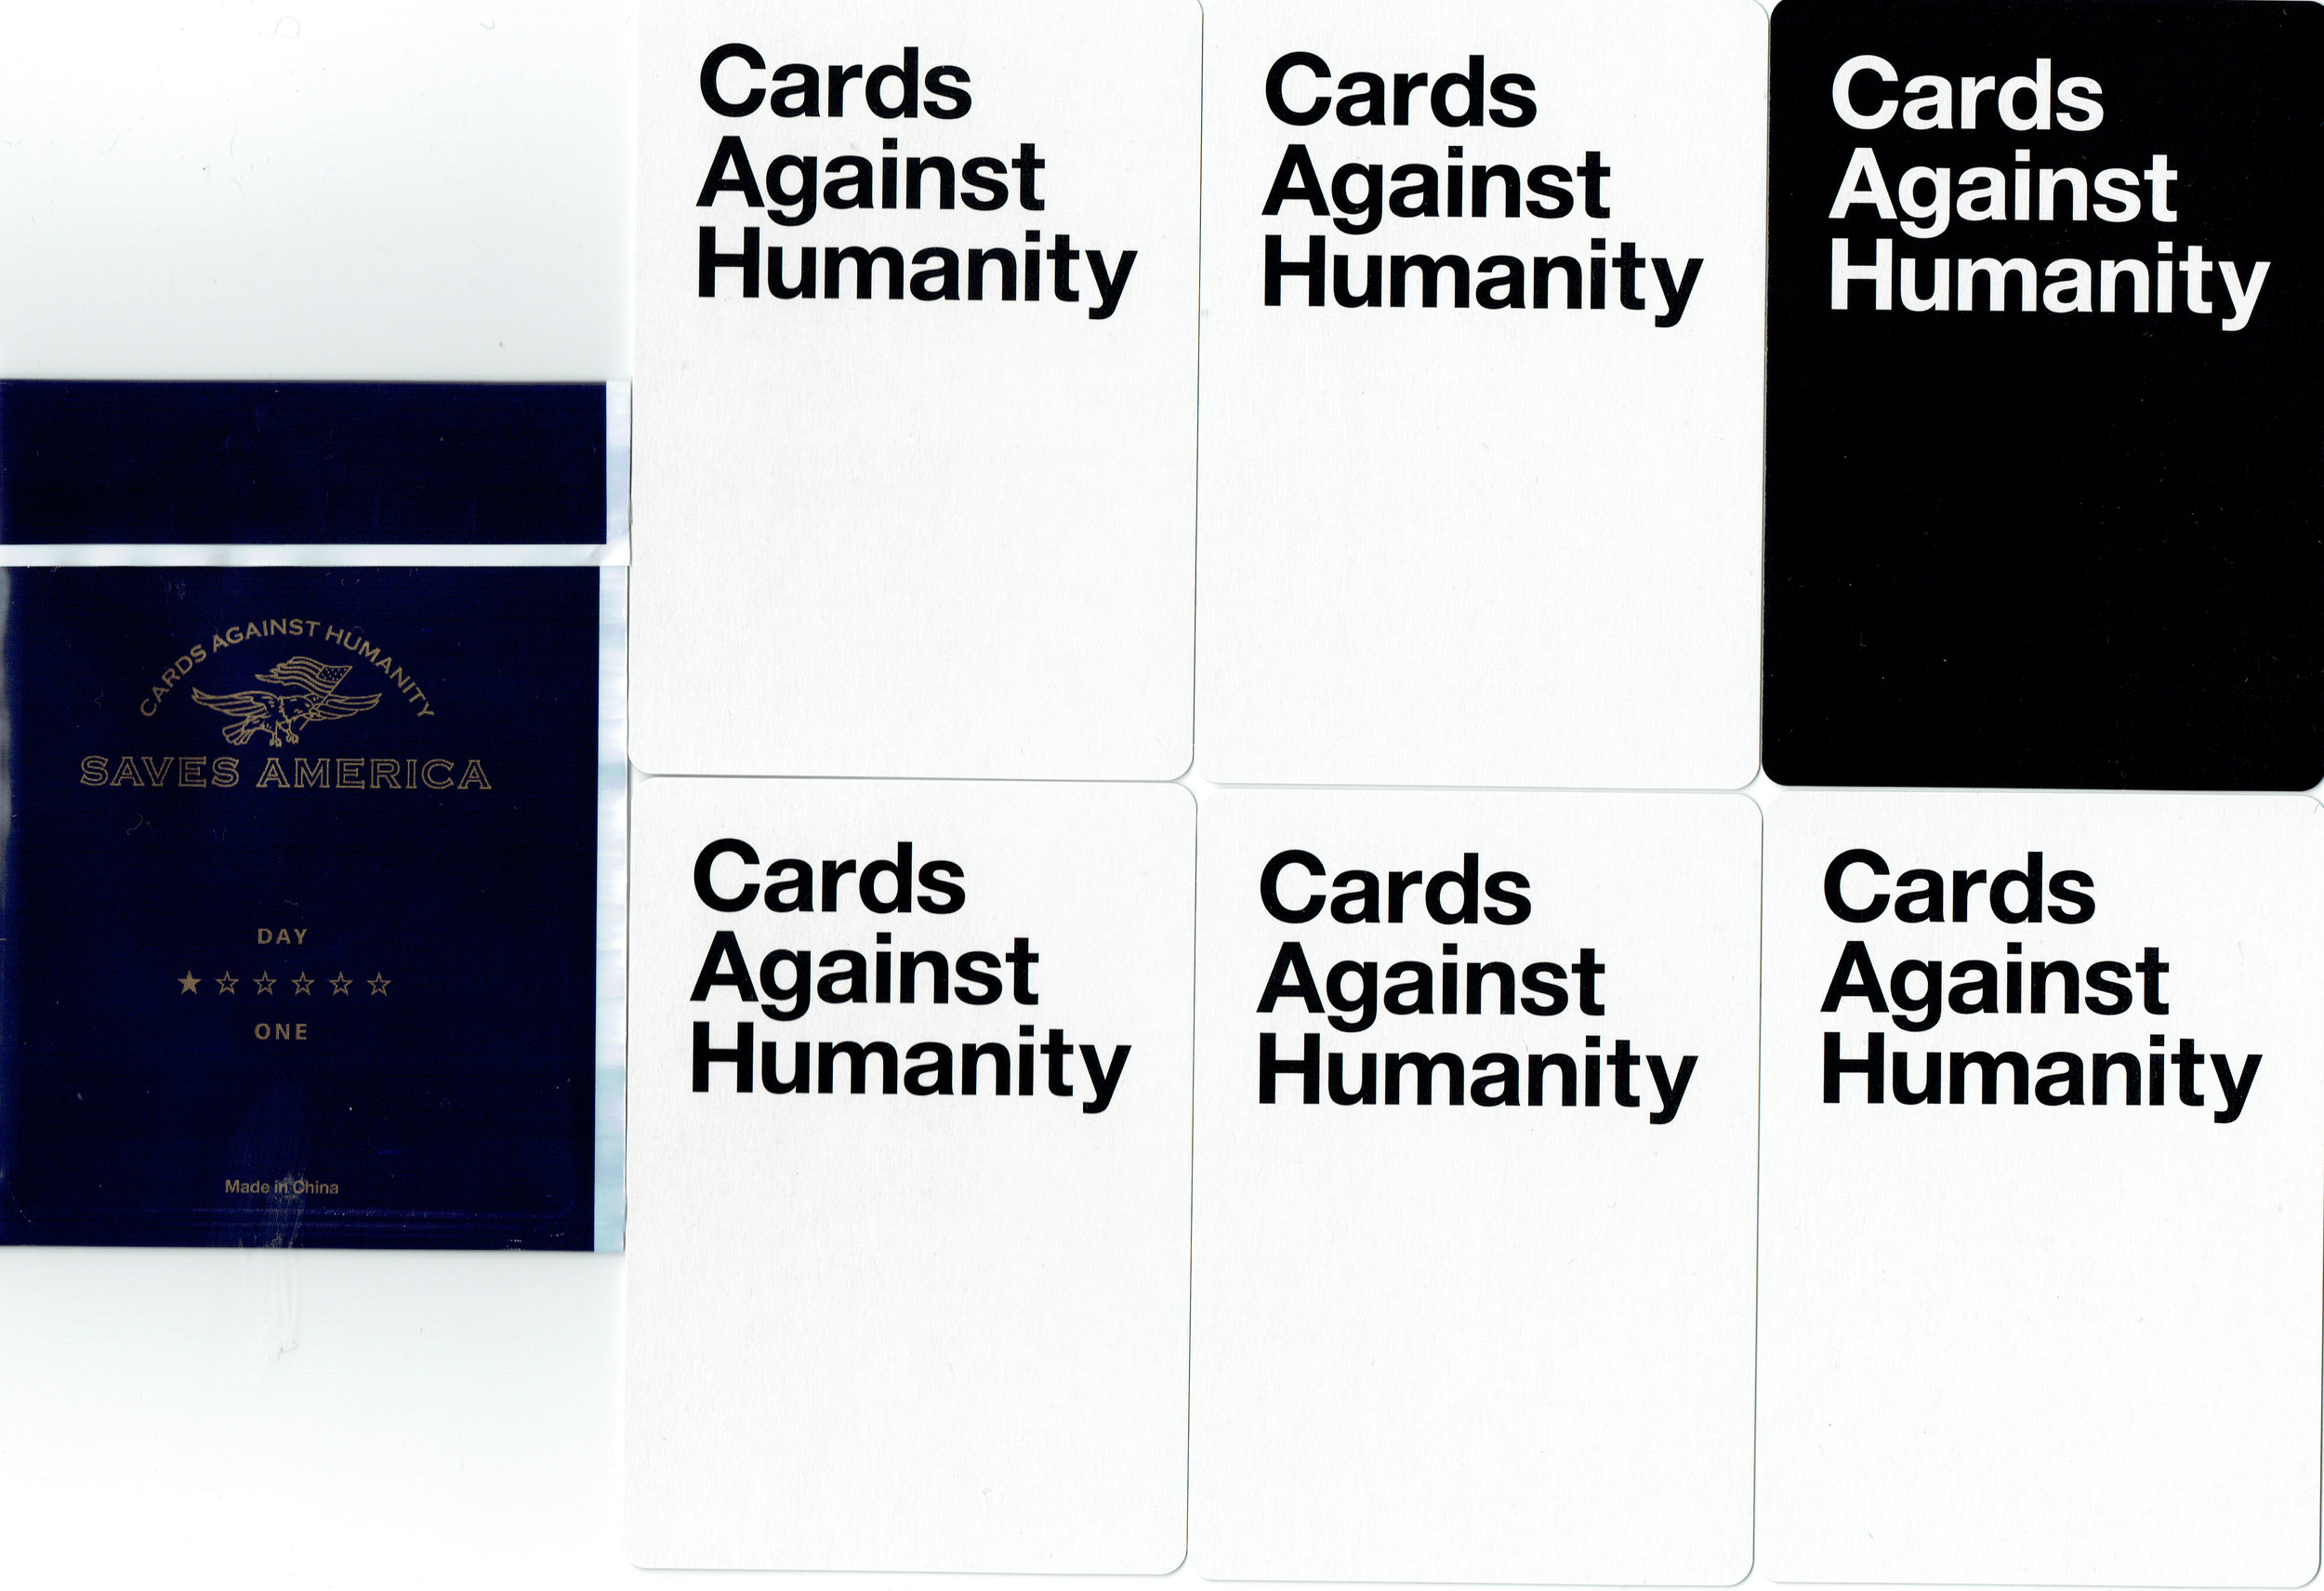 """Cards Against Humanity Saves America Day One """"CAH Stops The Wall"""" card pack. (backs)"""